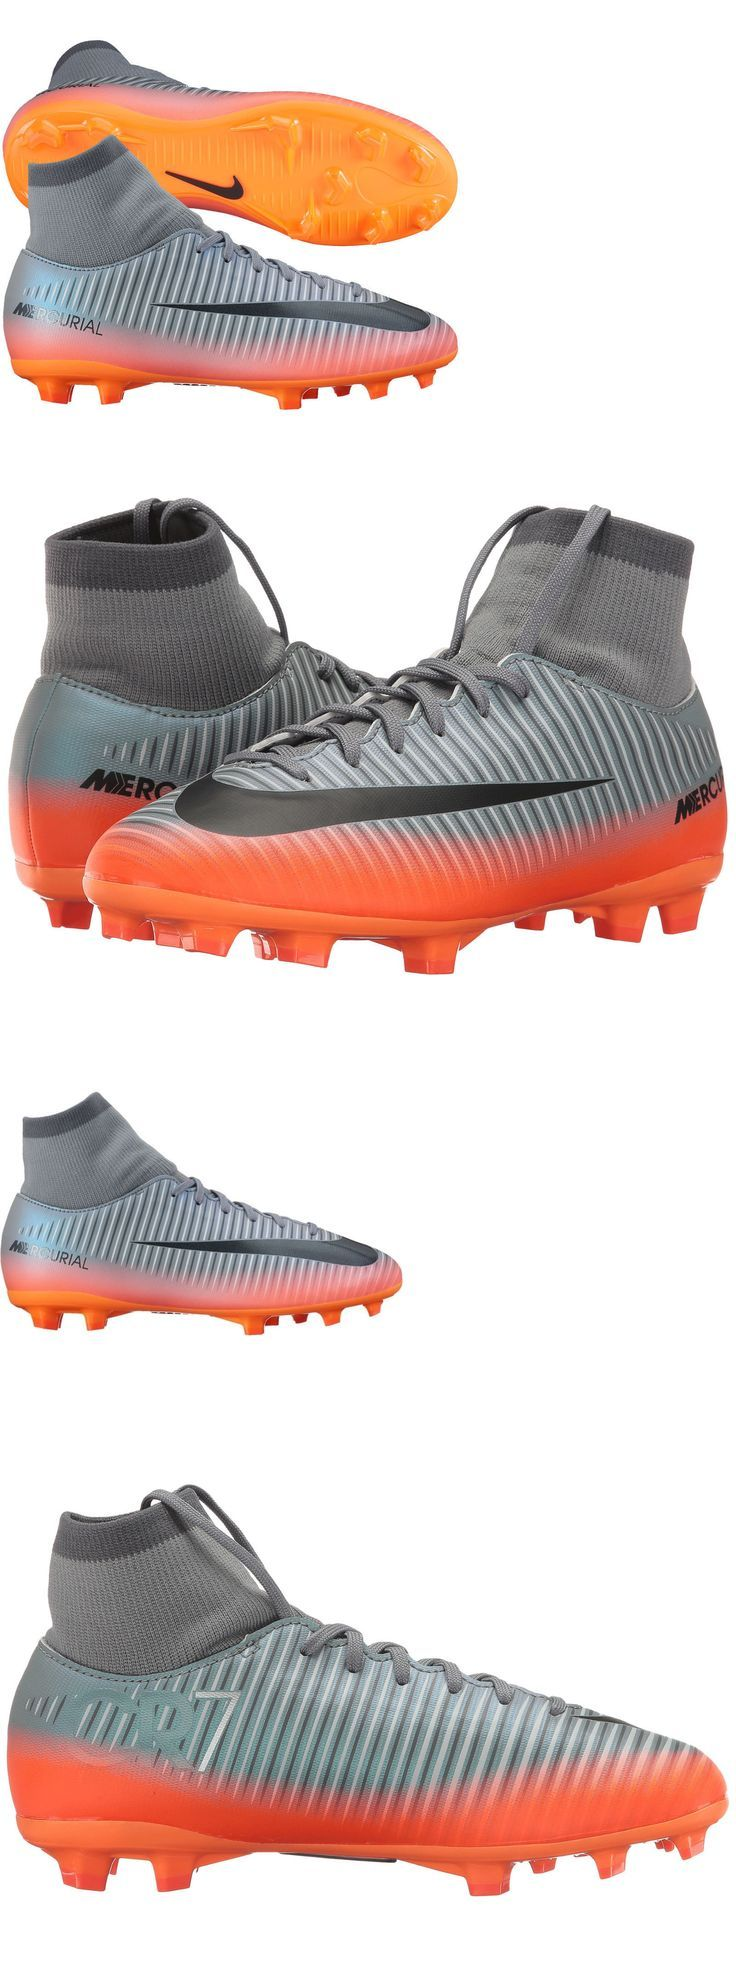 Youth 159177: Nike Mercurial Victory Vi Fg Ronaldo Cr7 2017 Df Soccer Shoes Kids Youth